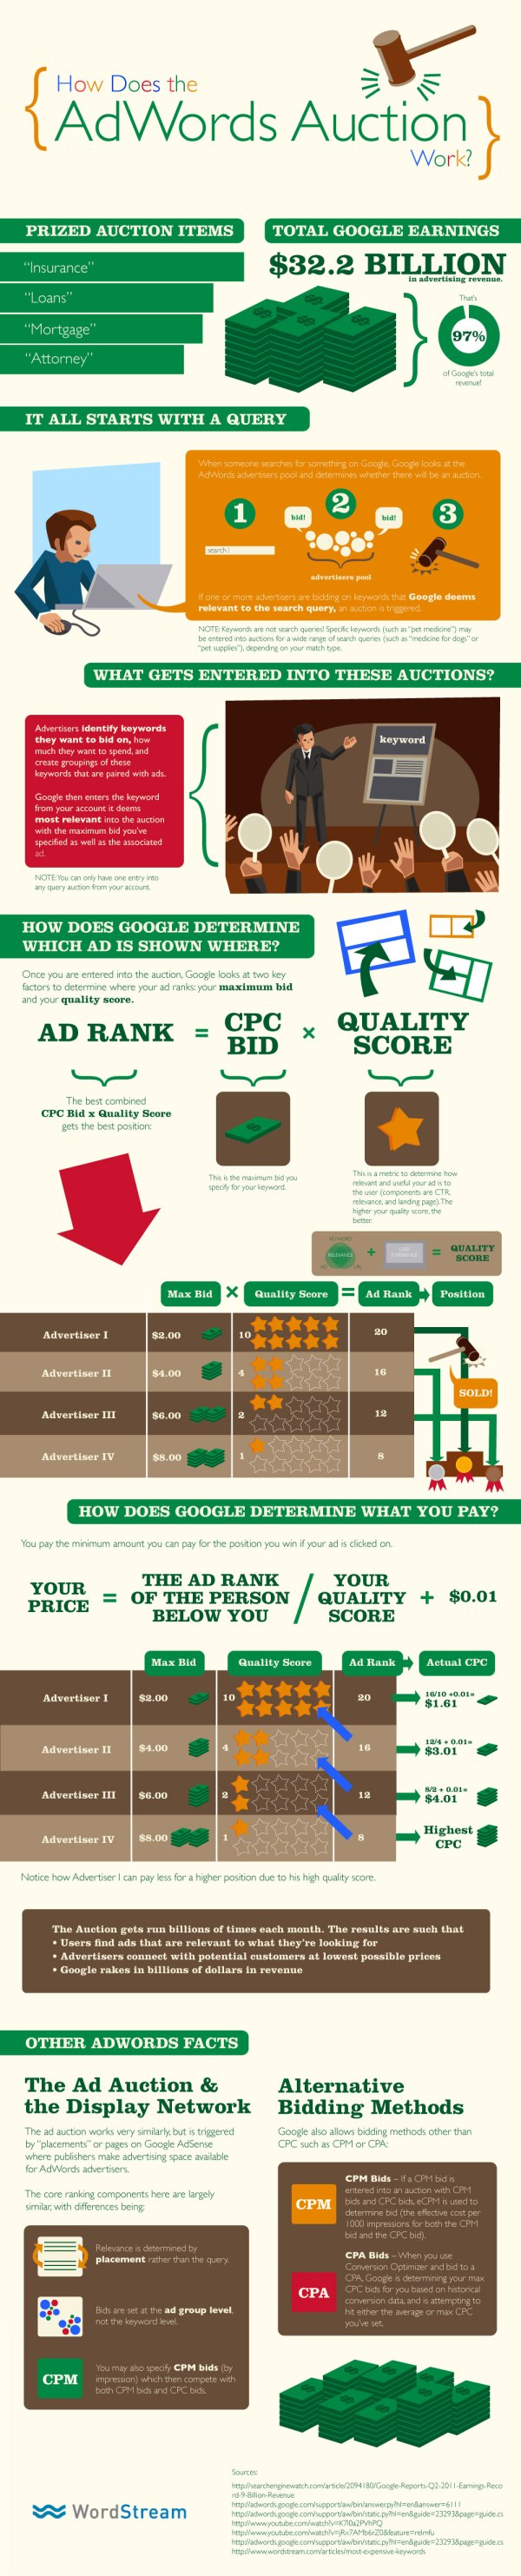 How Much Does Google Make from Advertising